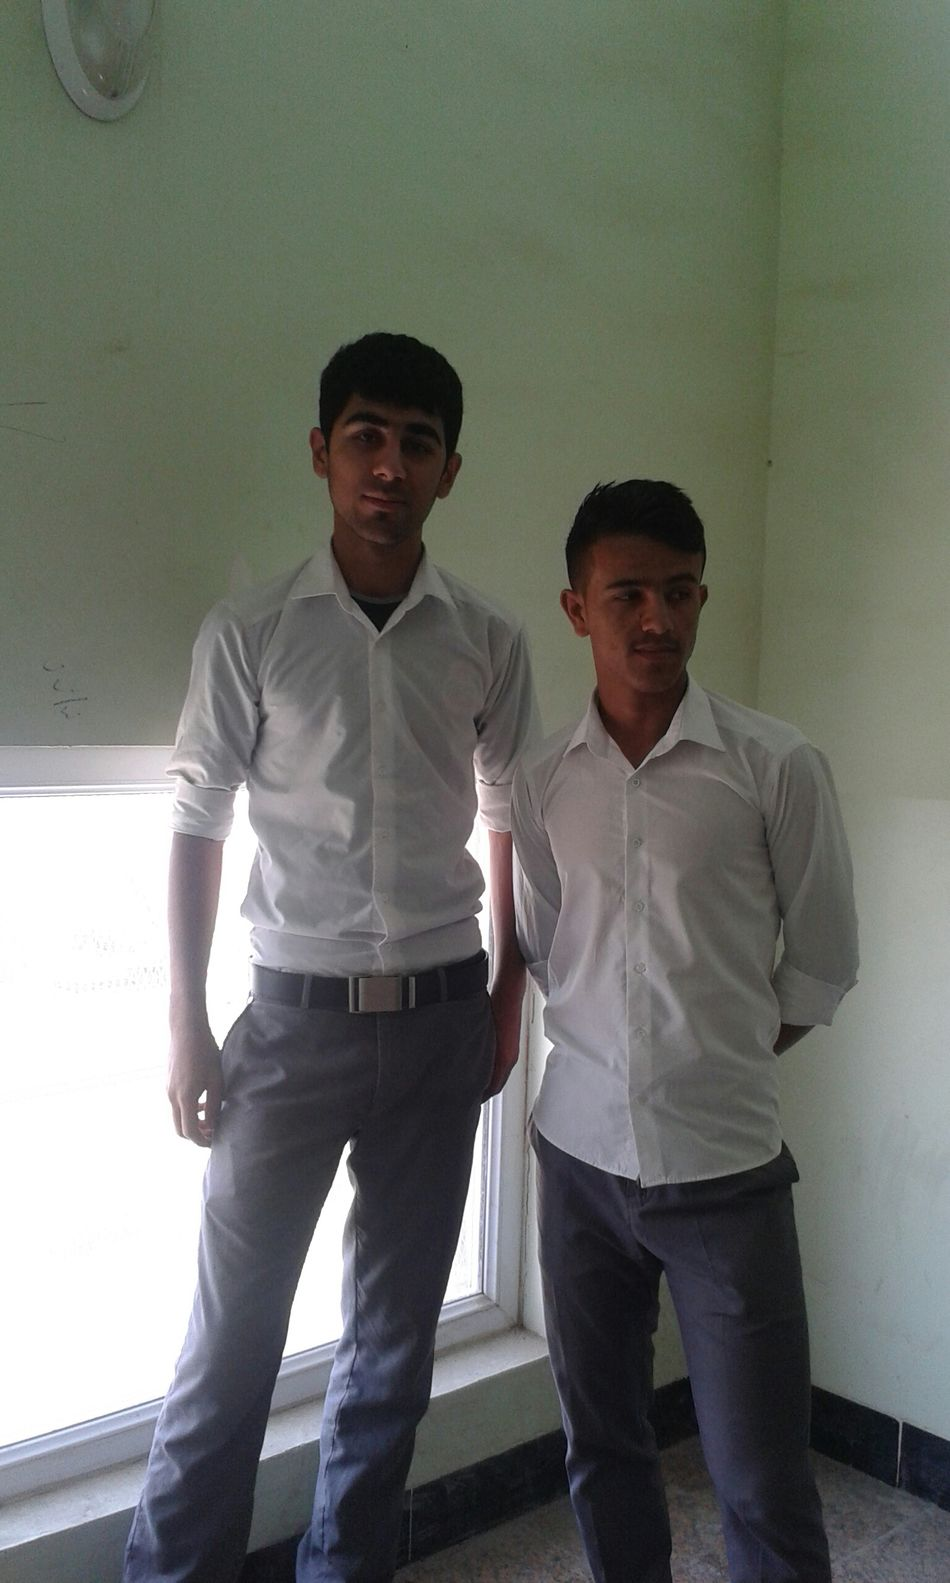 me and friend